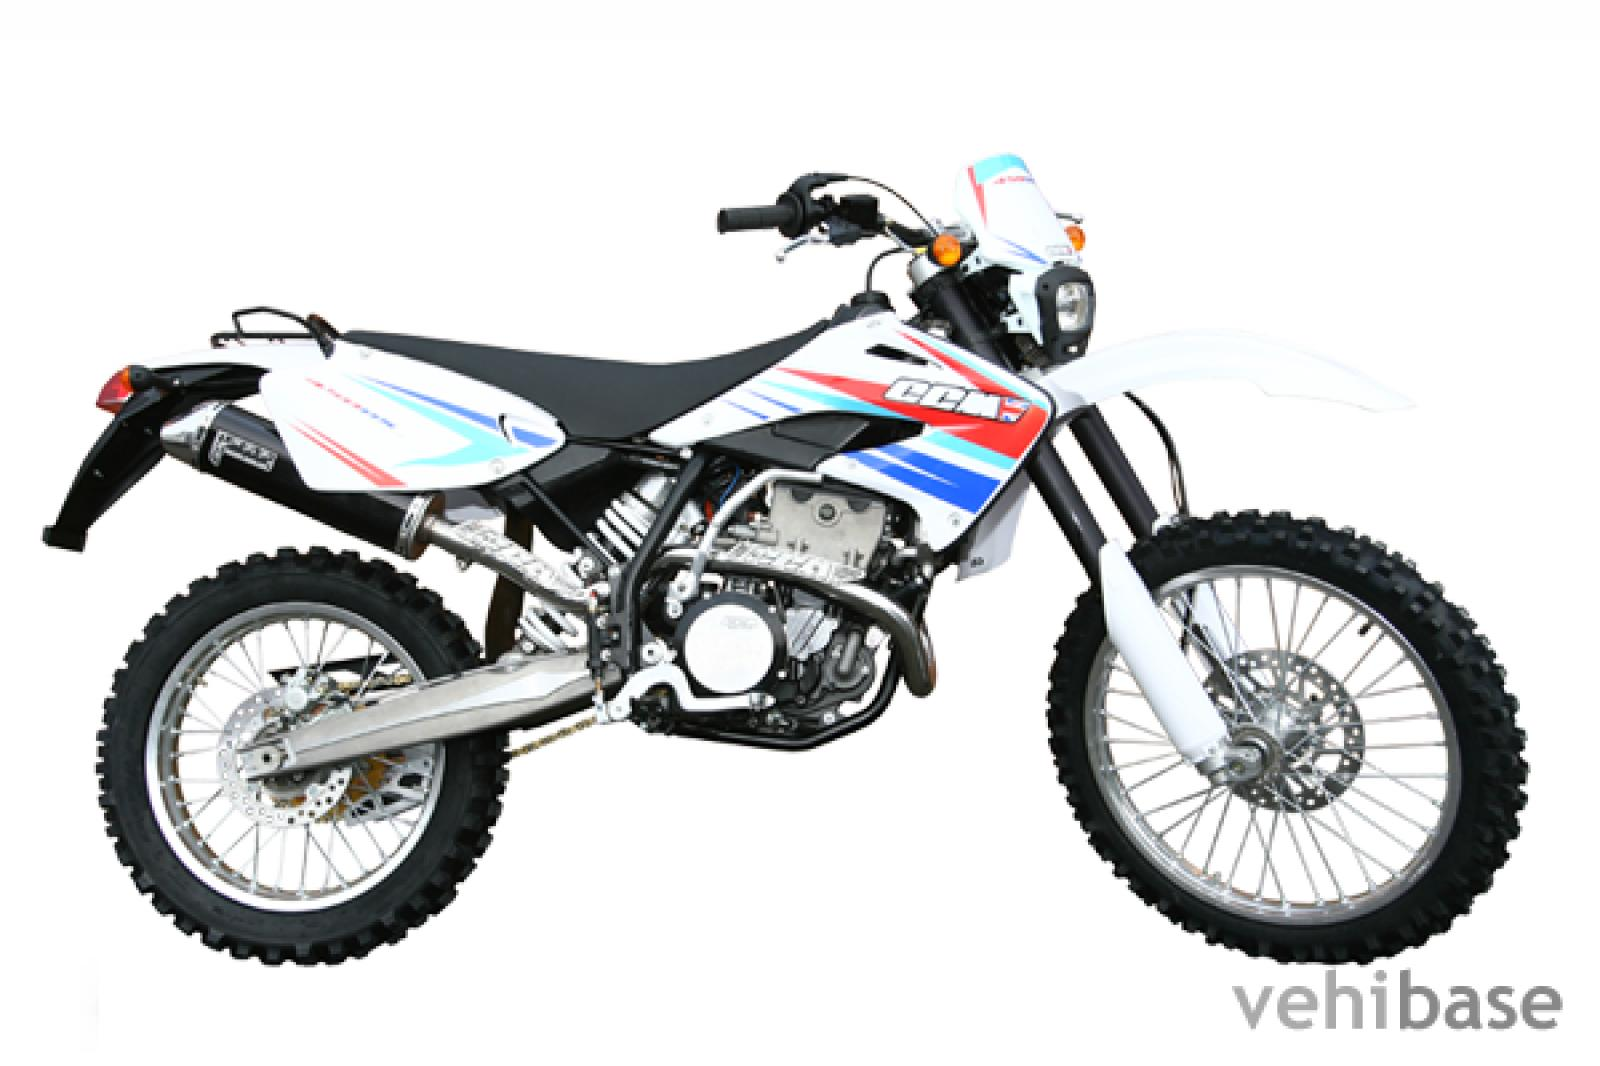 2007 CCM 404DS Dualsport Moto: pics, specs and information